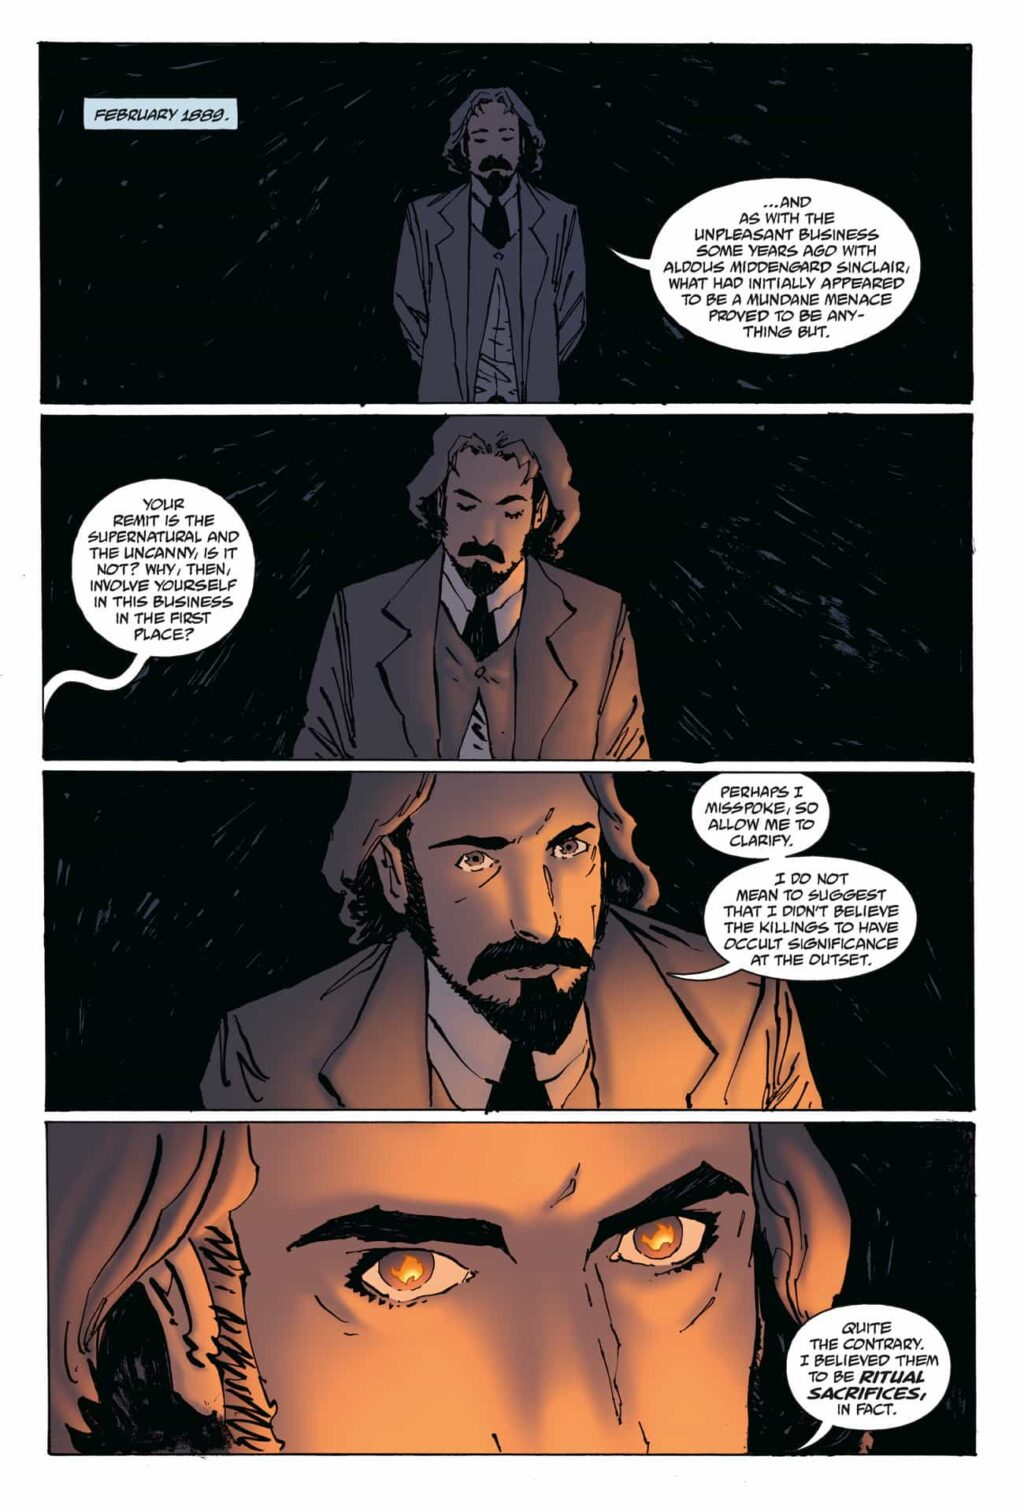 WFROD i1 PG 01 1024x1512 - Exclusive Preview: Jack the Ripper Haunts the Pages of WITCHFINDER: REIGN OF DARKNESS